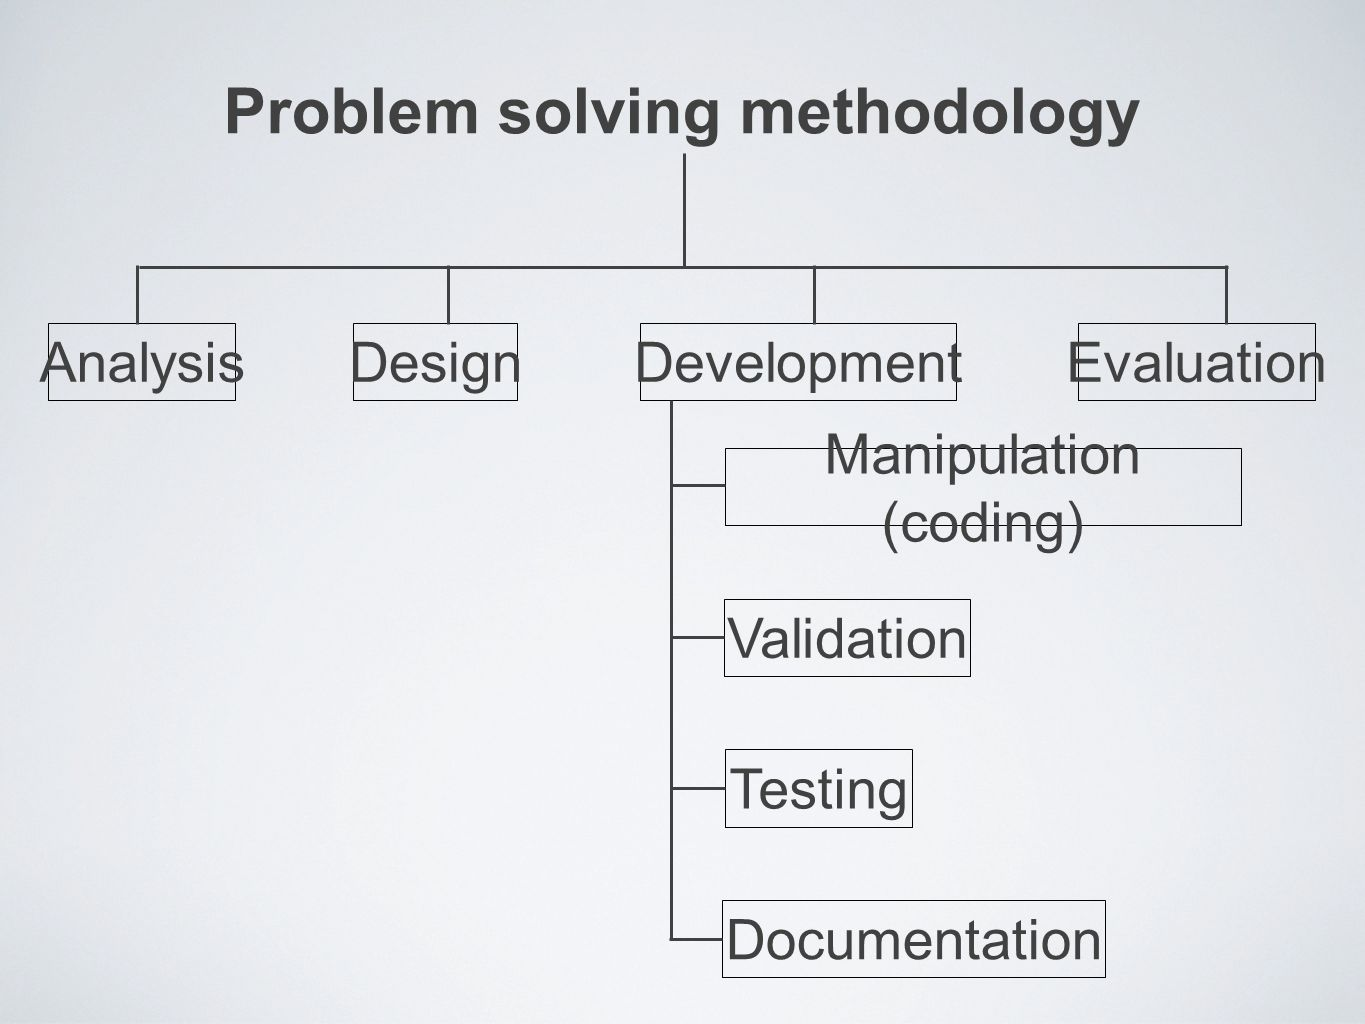 Problem solving methodology AnalysisDesignDevelopmentEvaluation Manipulation (coding) Validation Testing Documentation